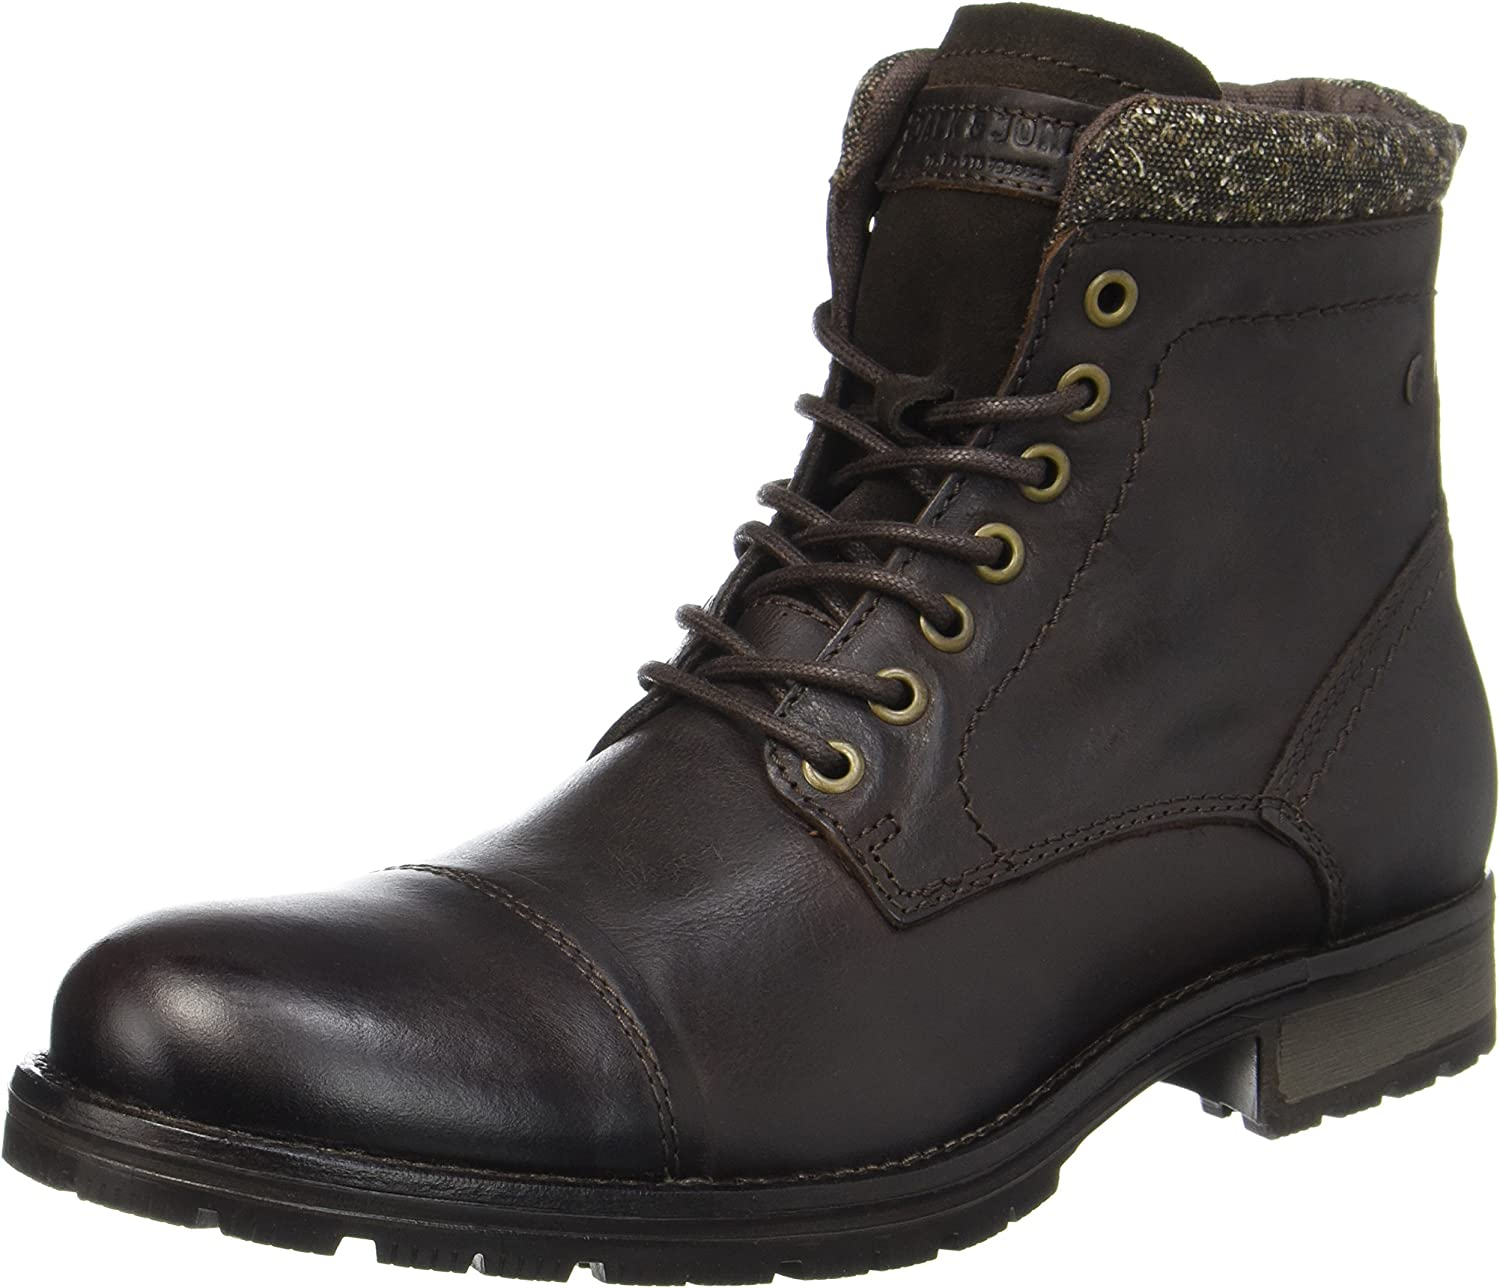 Jack & Jones Jfwmarly Leather Bison, Botas Clasicas para Hombre